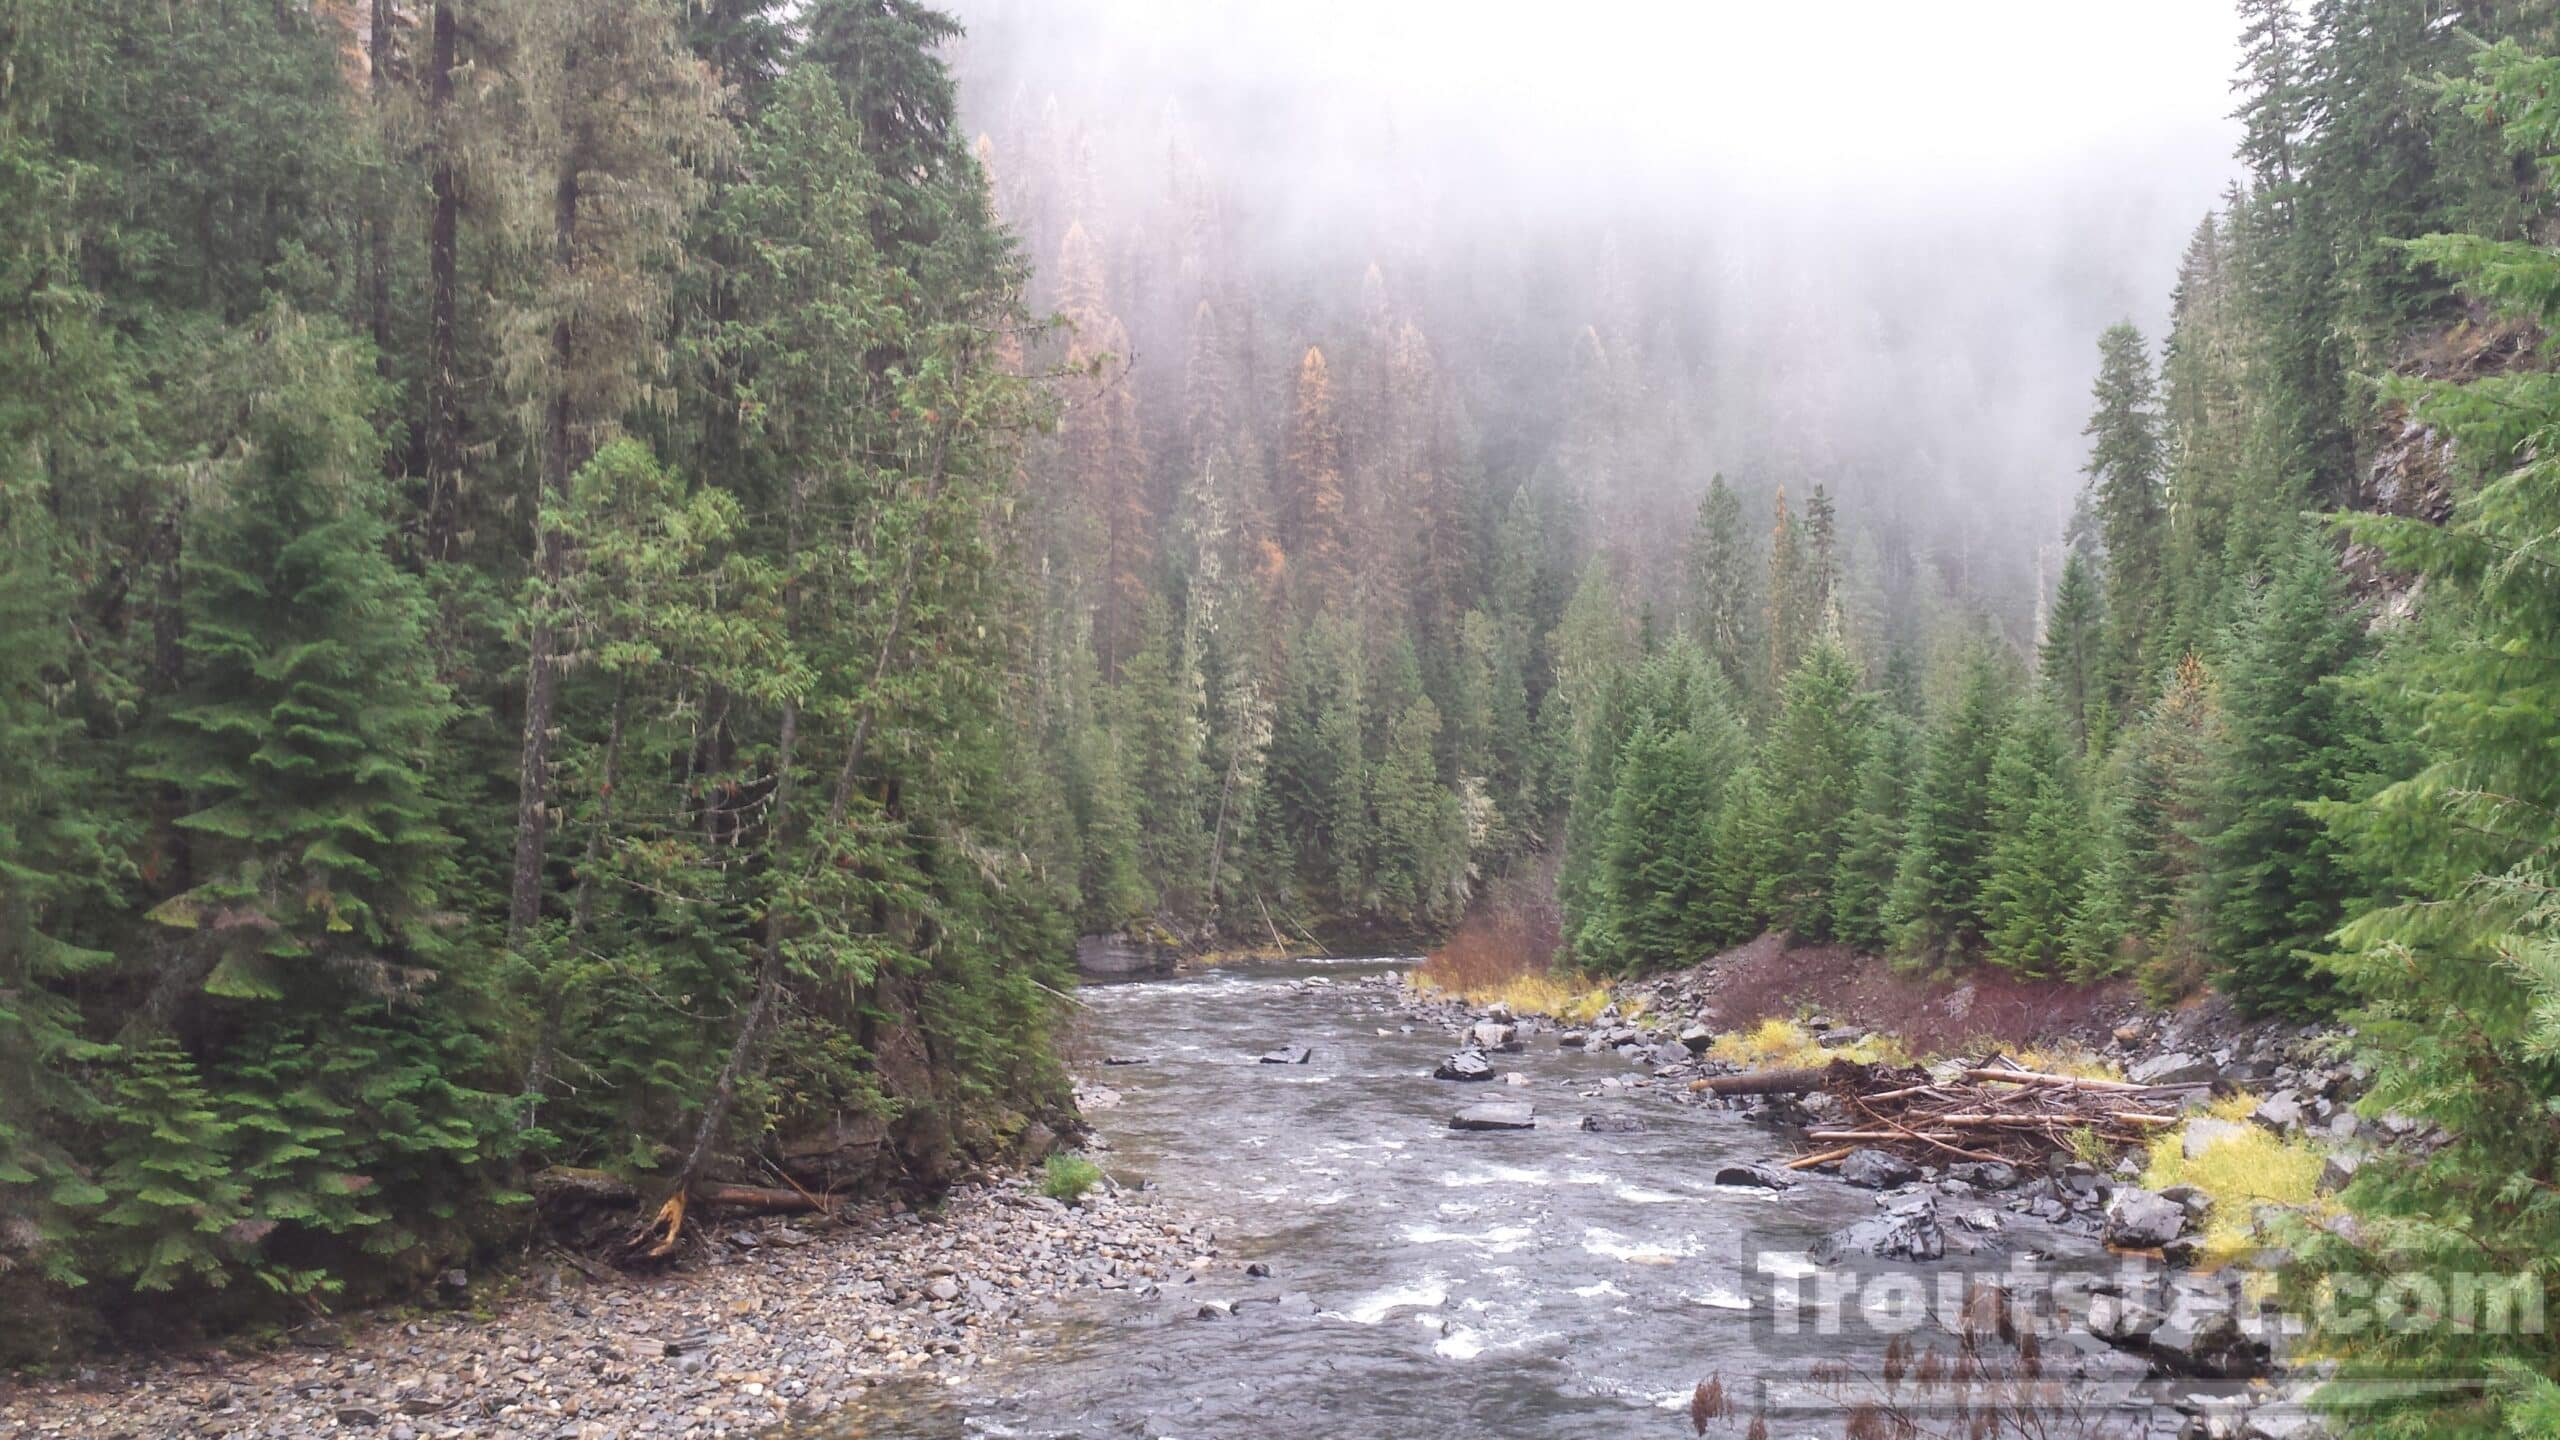 Fishing the rain for trout in Northern Idaho